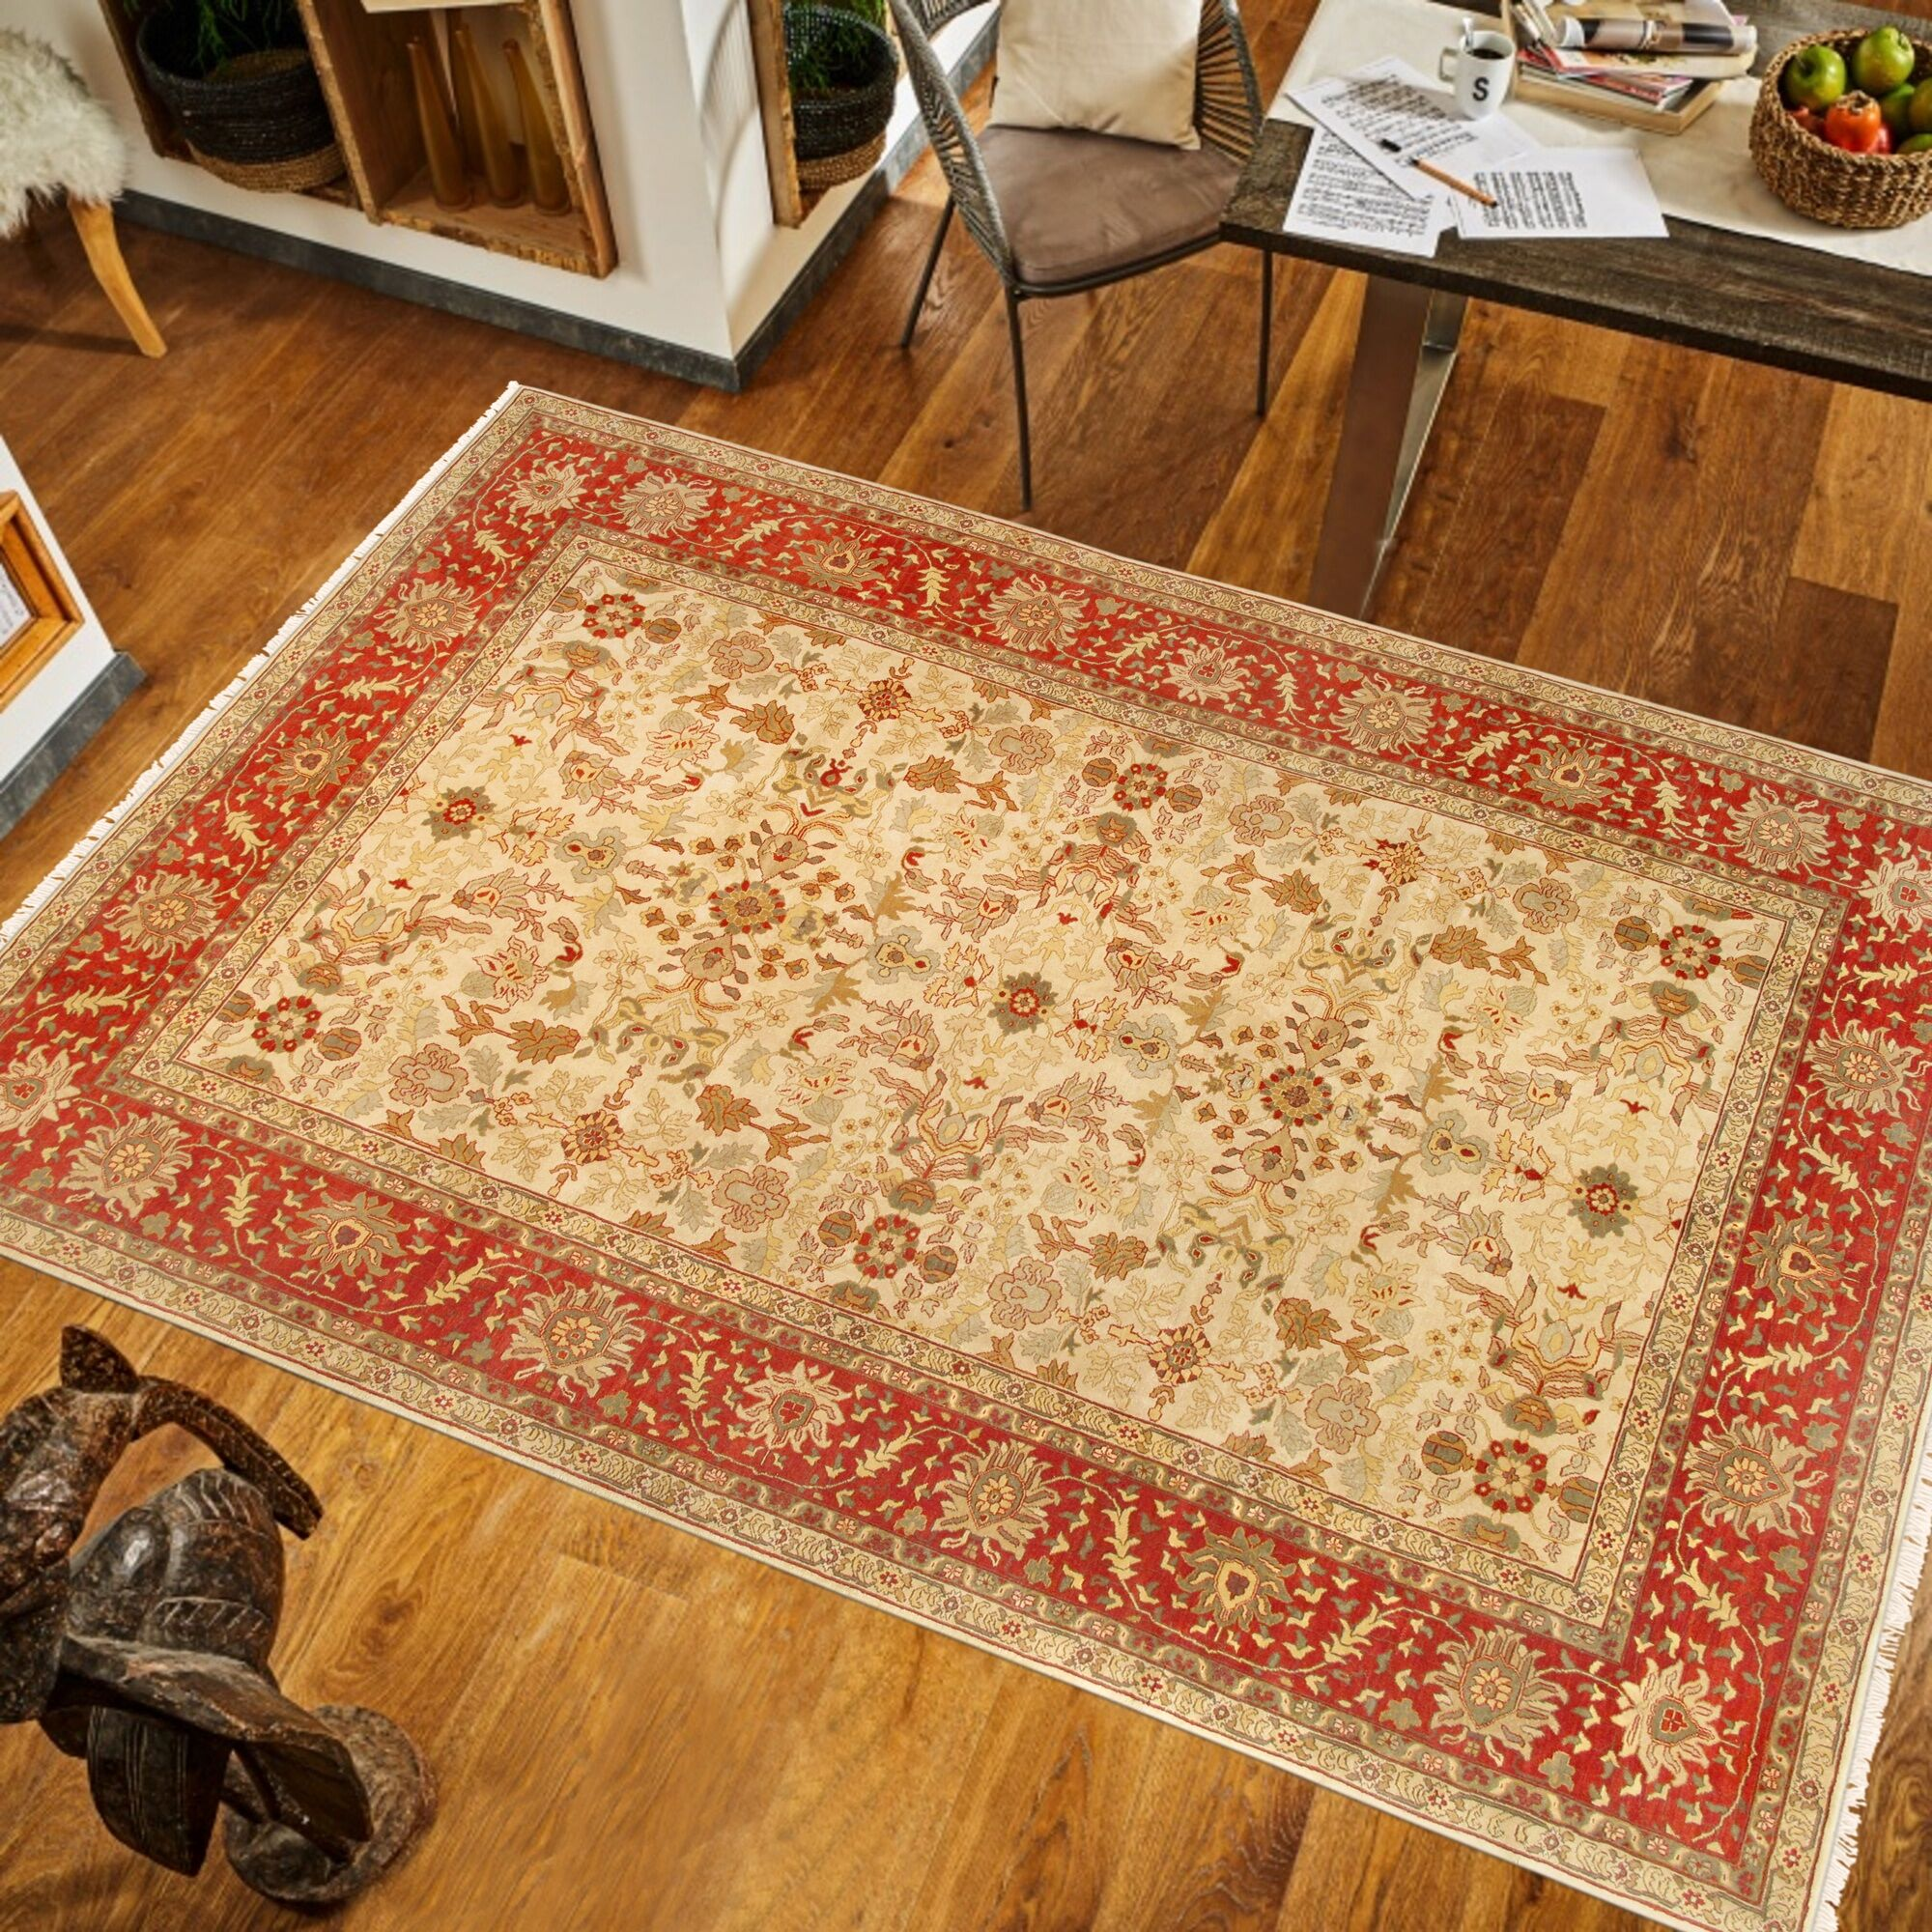 Sultanabad Hand-Knotted Wool Beige/Red Area Rug